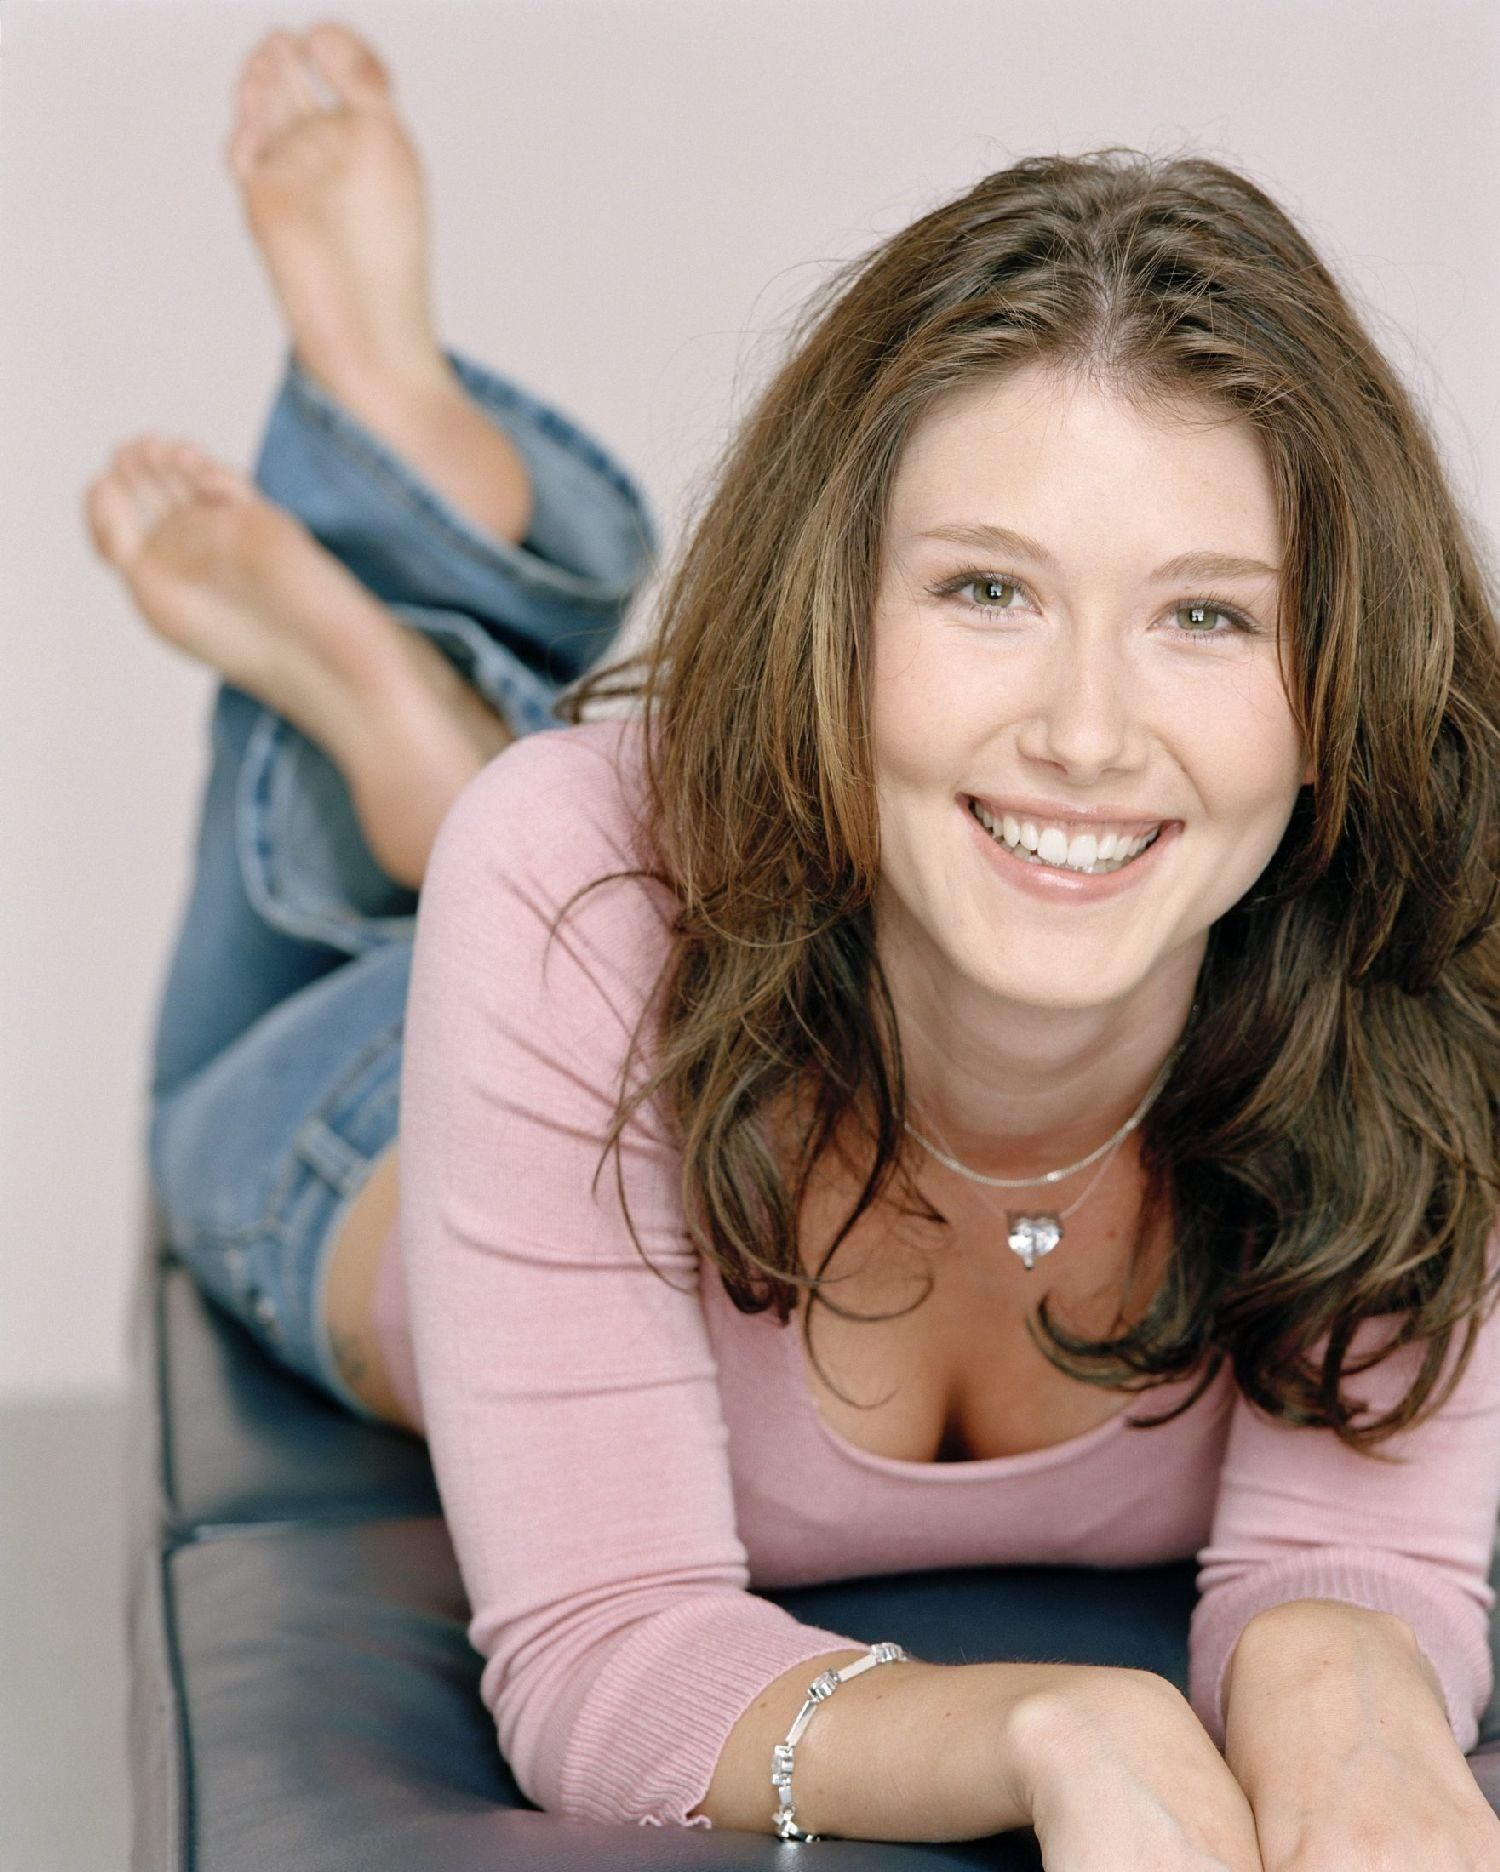 Jewel Staite Sexy Pics jewel staite - kaylee bring back firefly! | my style | jewel